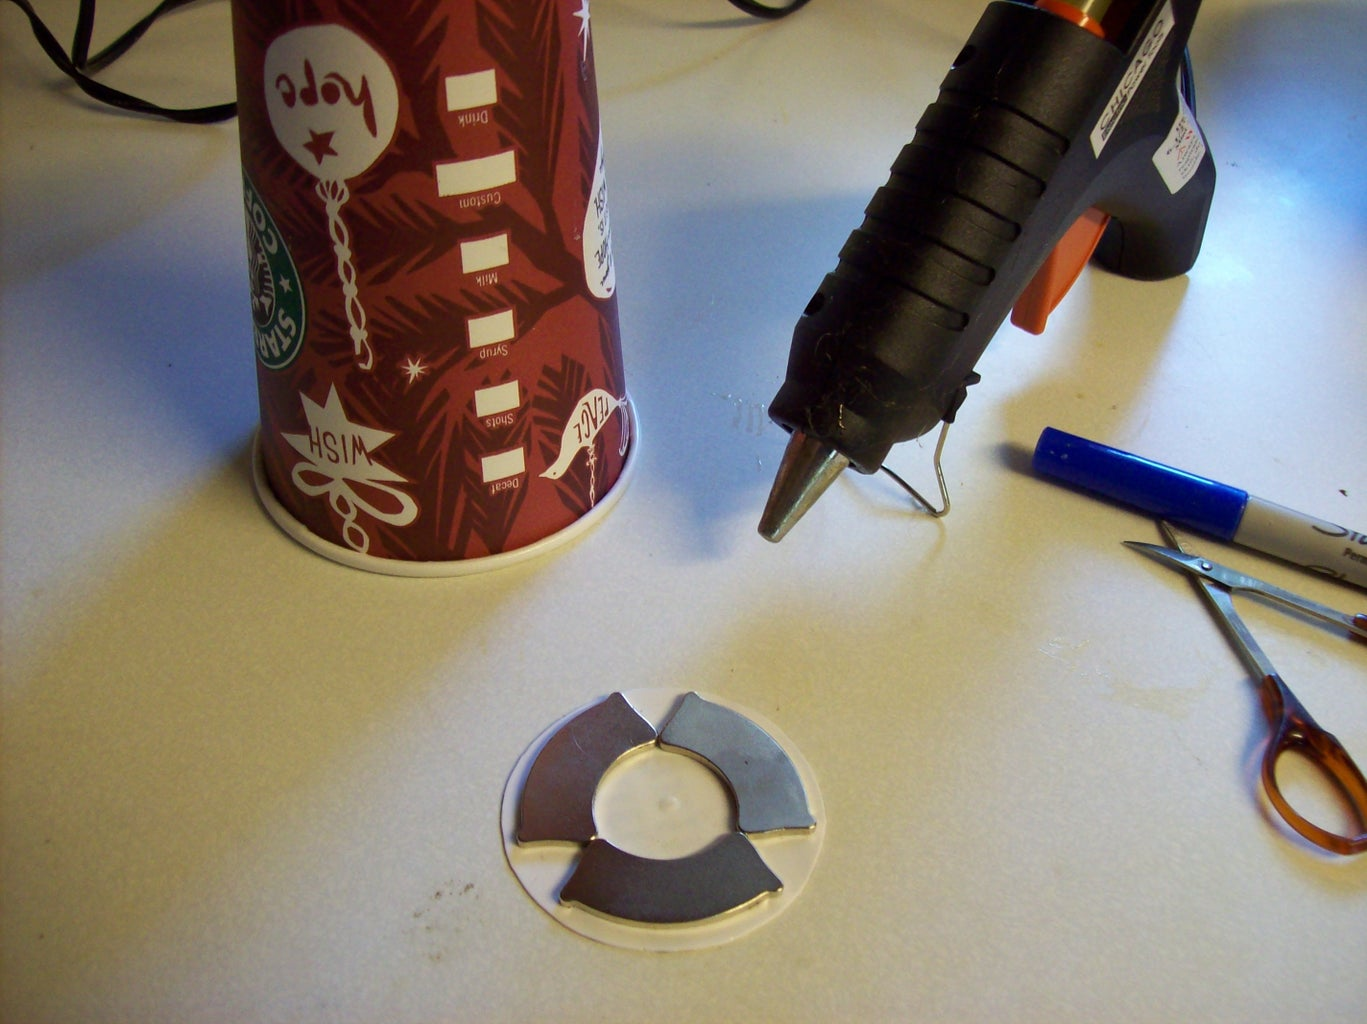 Attaching the Magnets